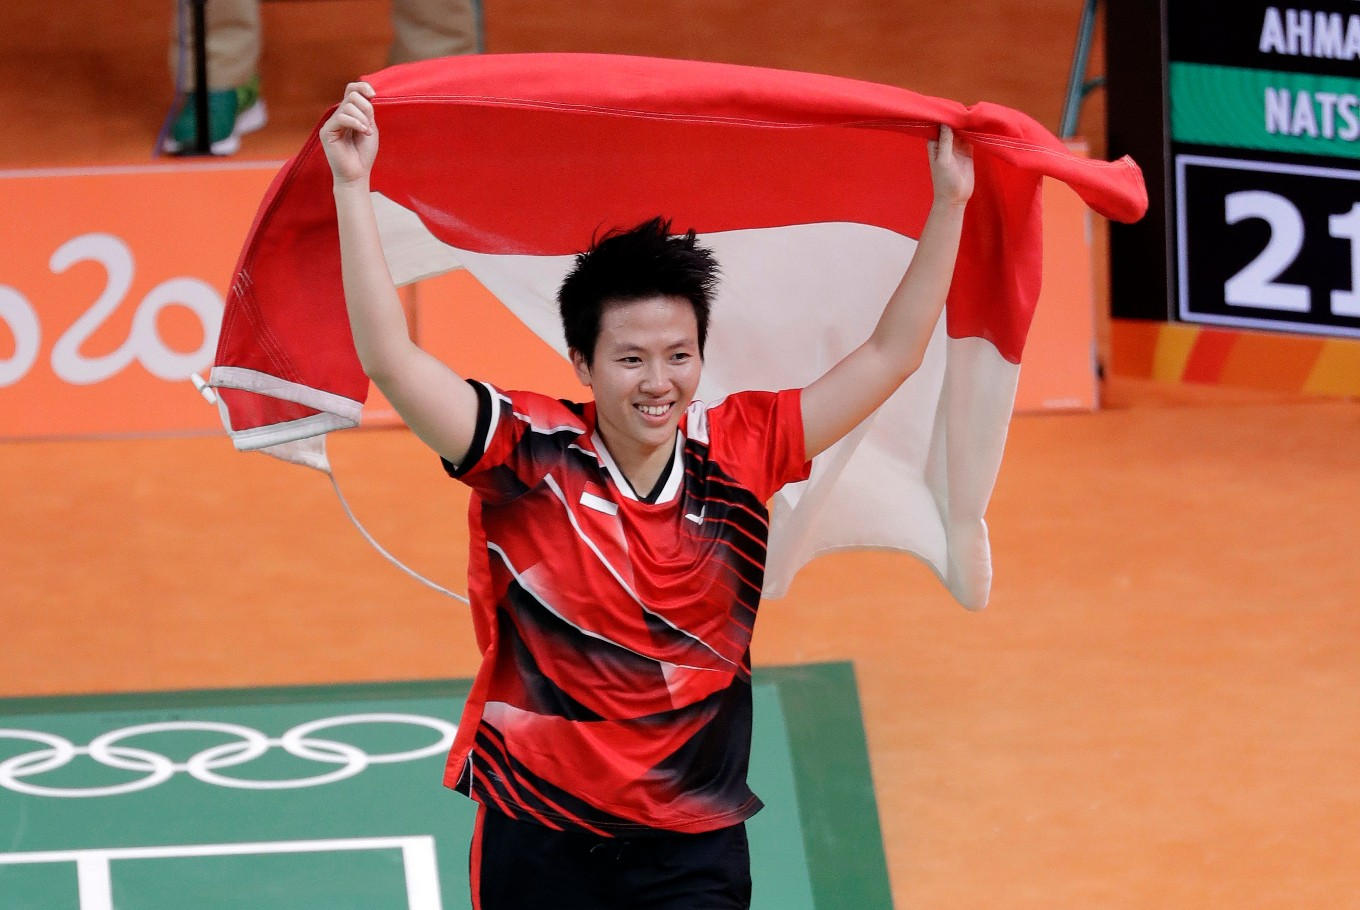 Liliyana Natsir Indonesias Badminton Mixed Doubles Queen